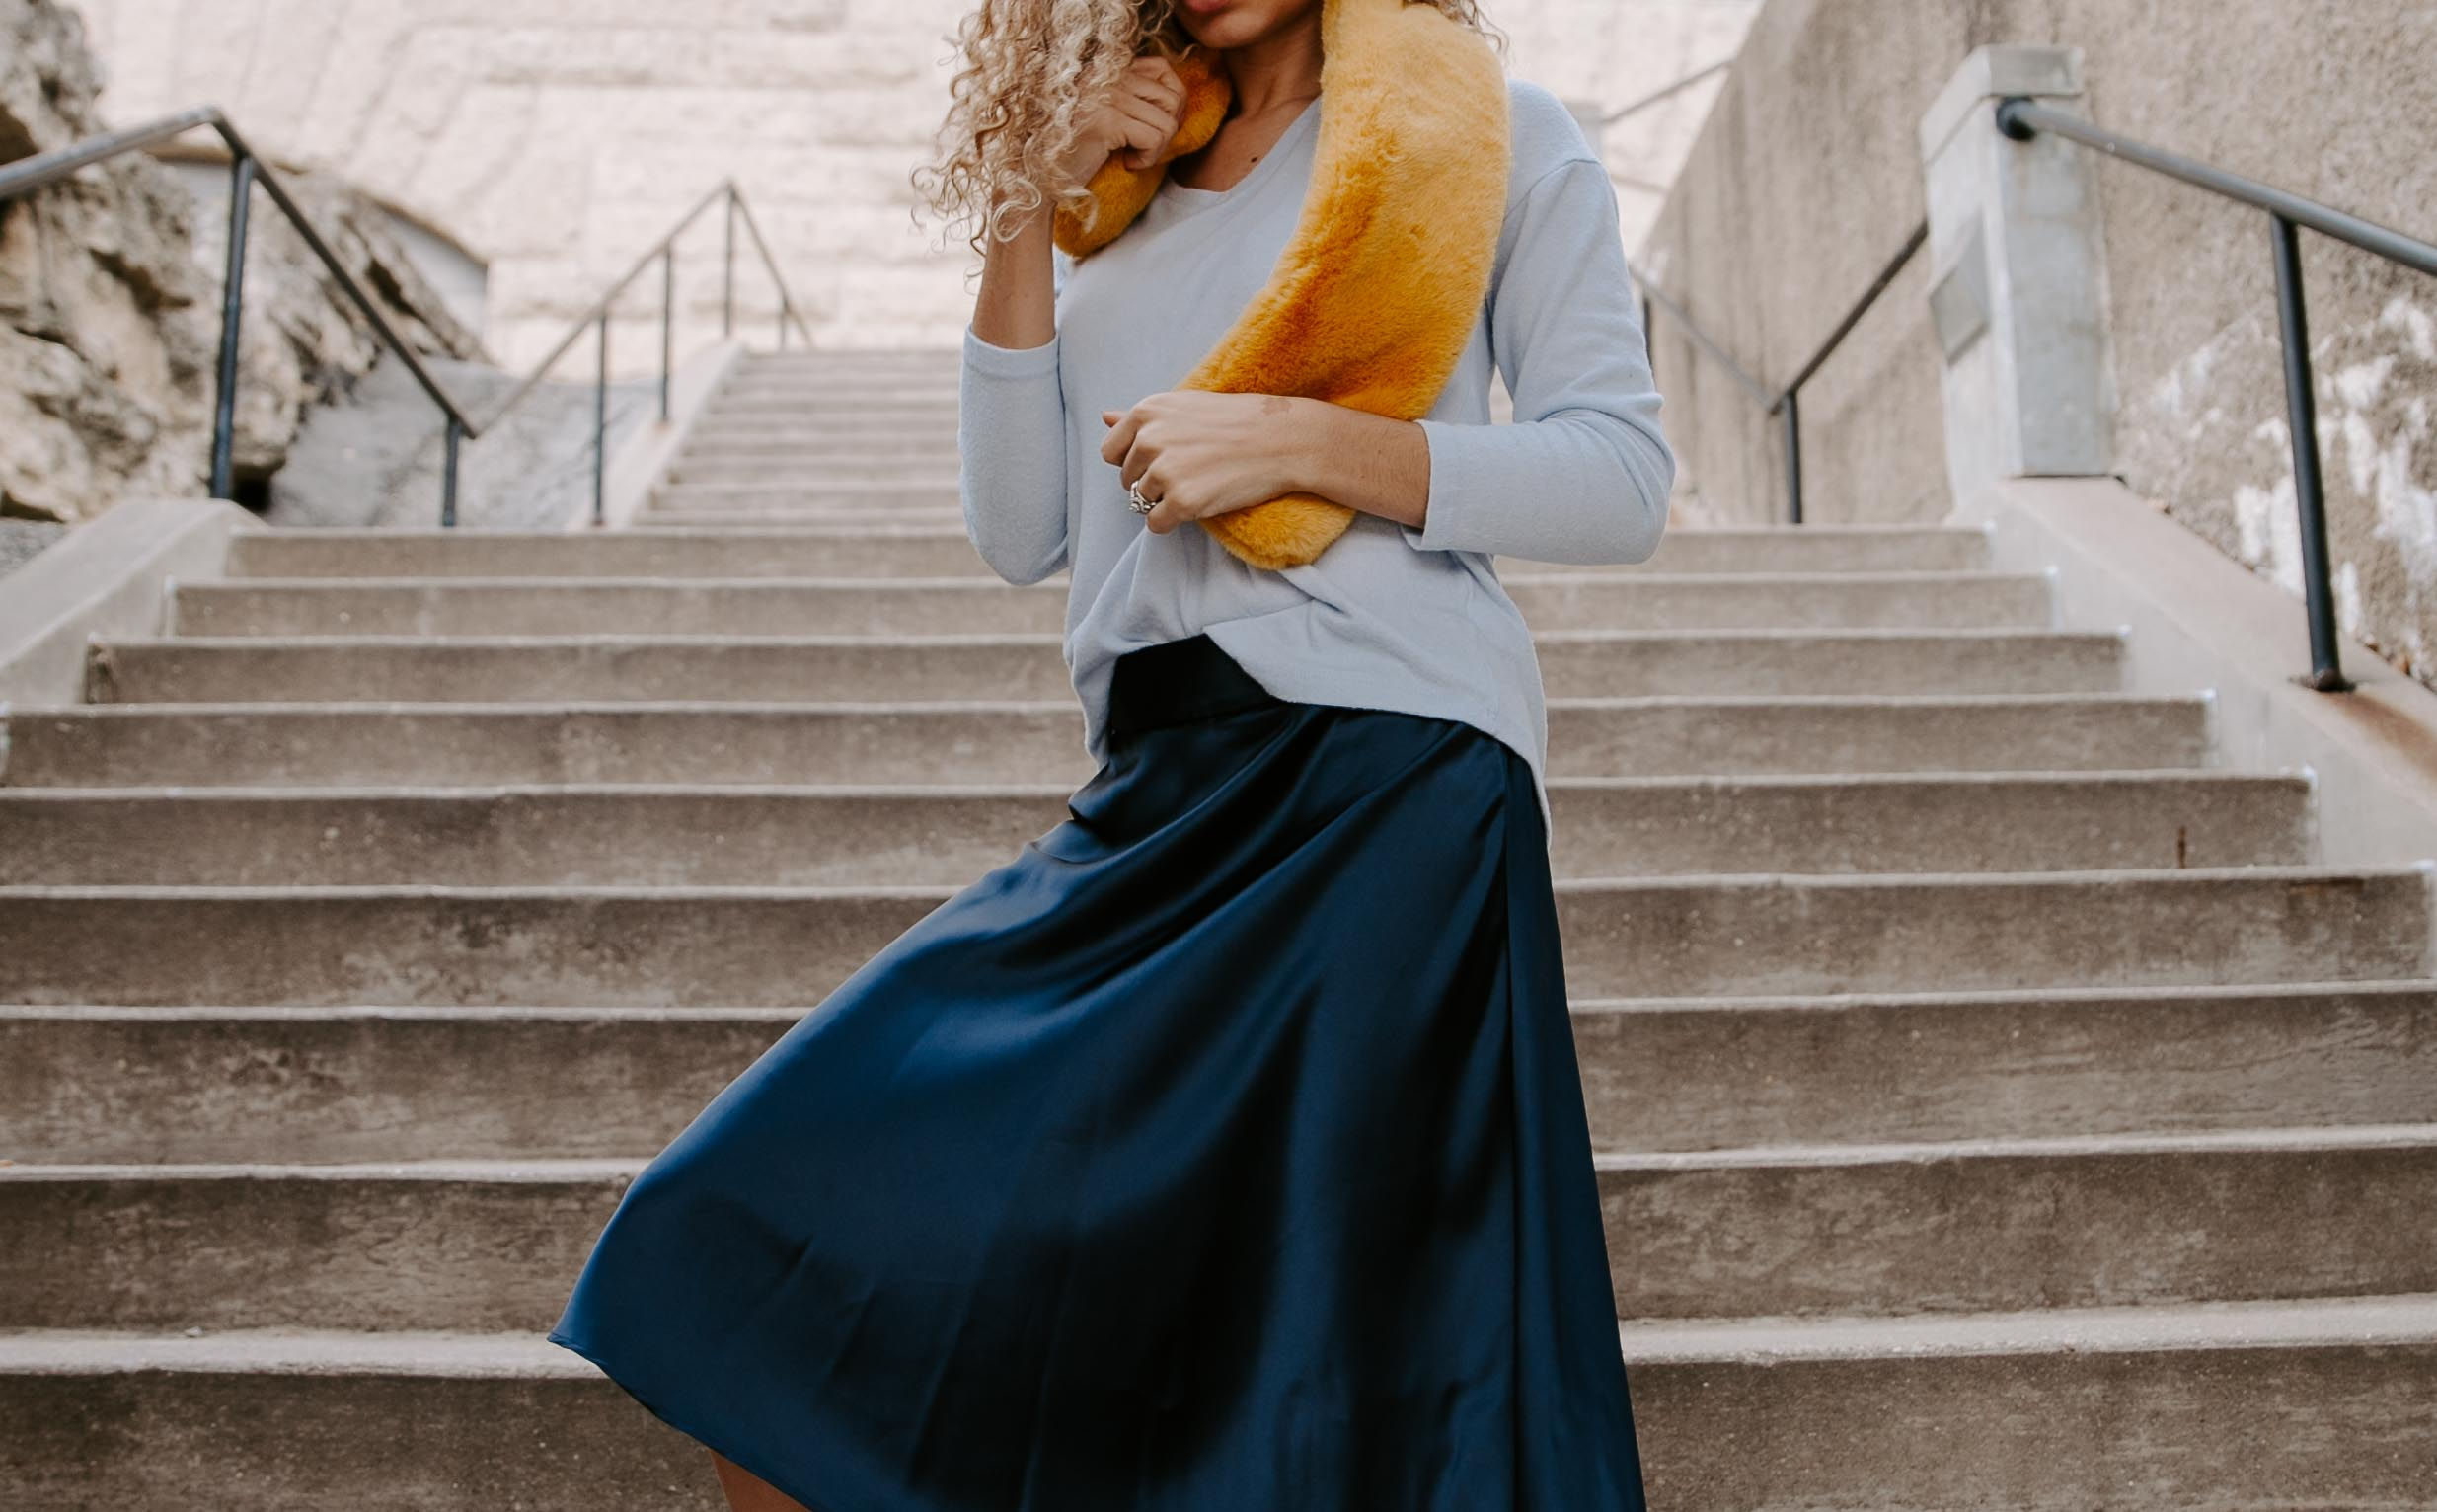 Contributor Carolyn Arentson of My Chic Obsession, wearing a monochromatic outfit of different blue tones. A dark blue skirt and a light blue sweater, styled with a bright yellow fur scarf.